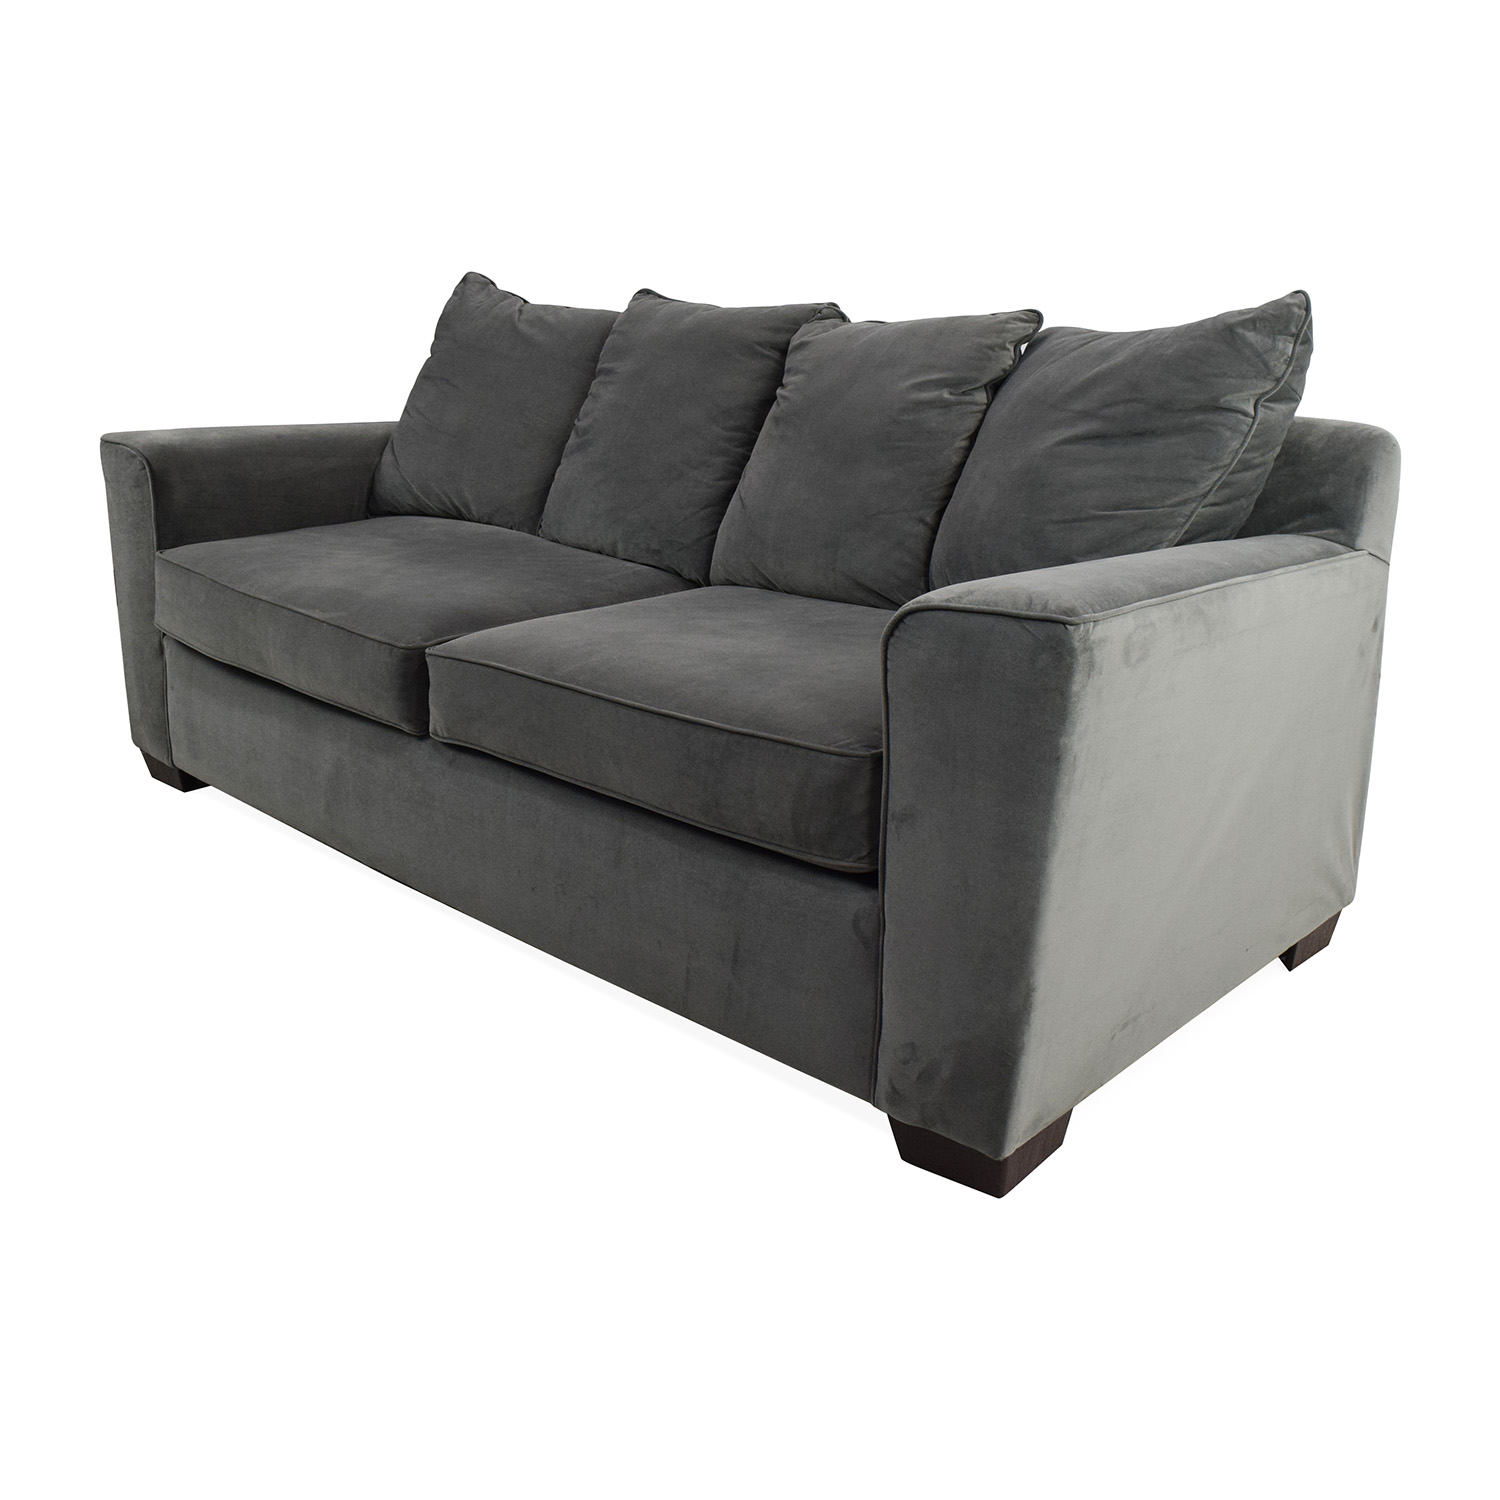 53 Off Jennifer Convertibles Jennifer Convertibles Plush Sofa Sofas